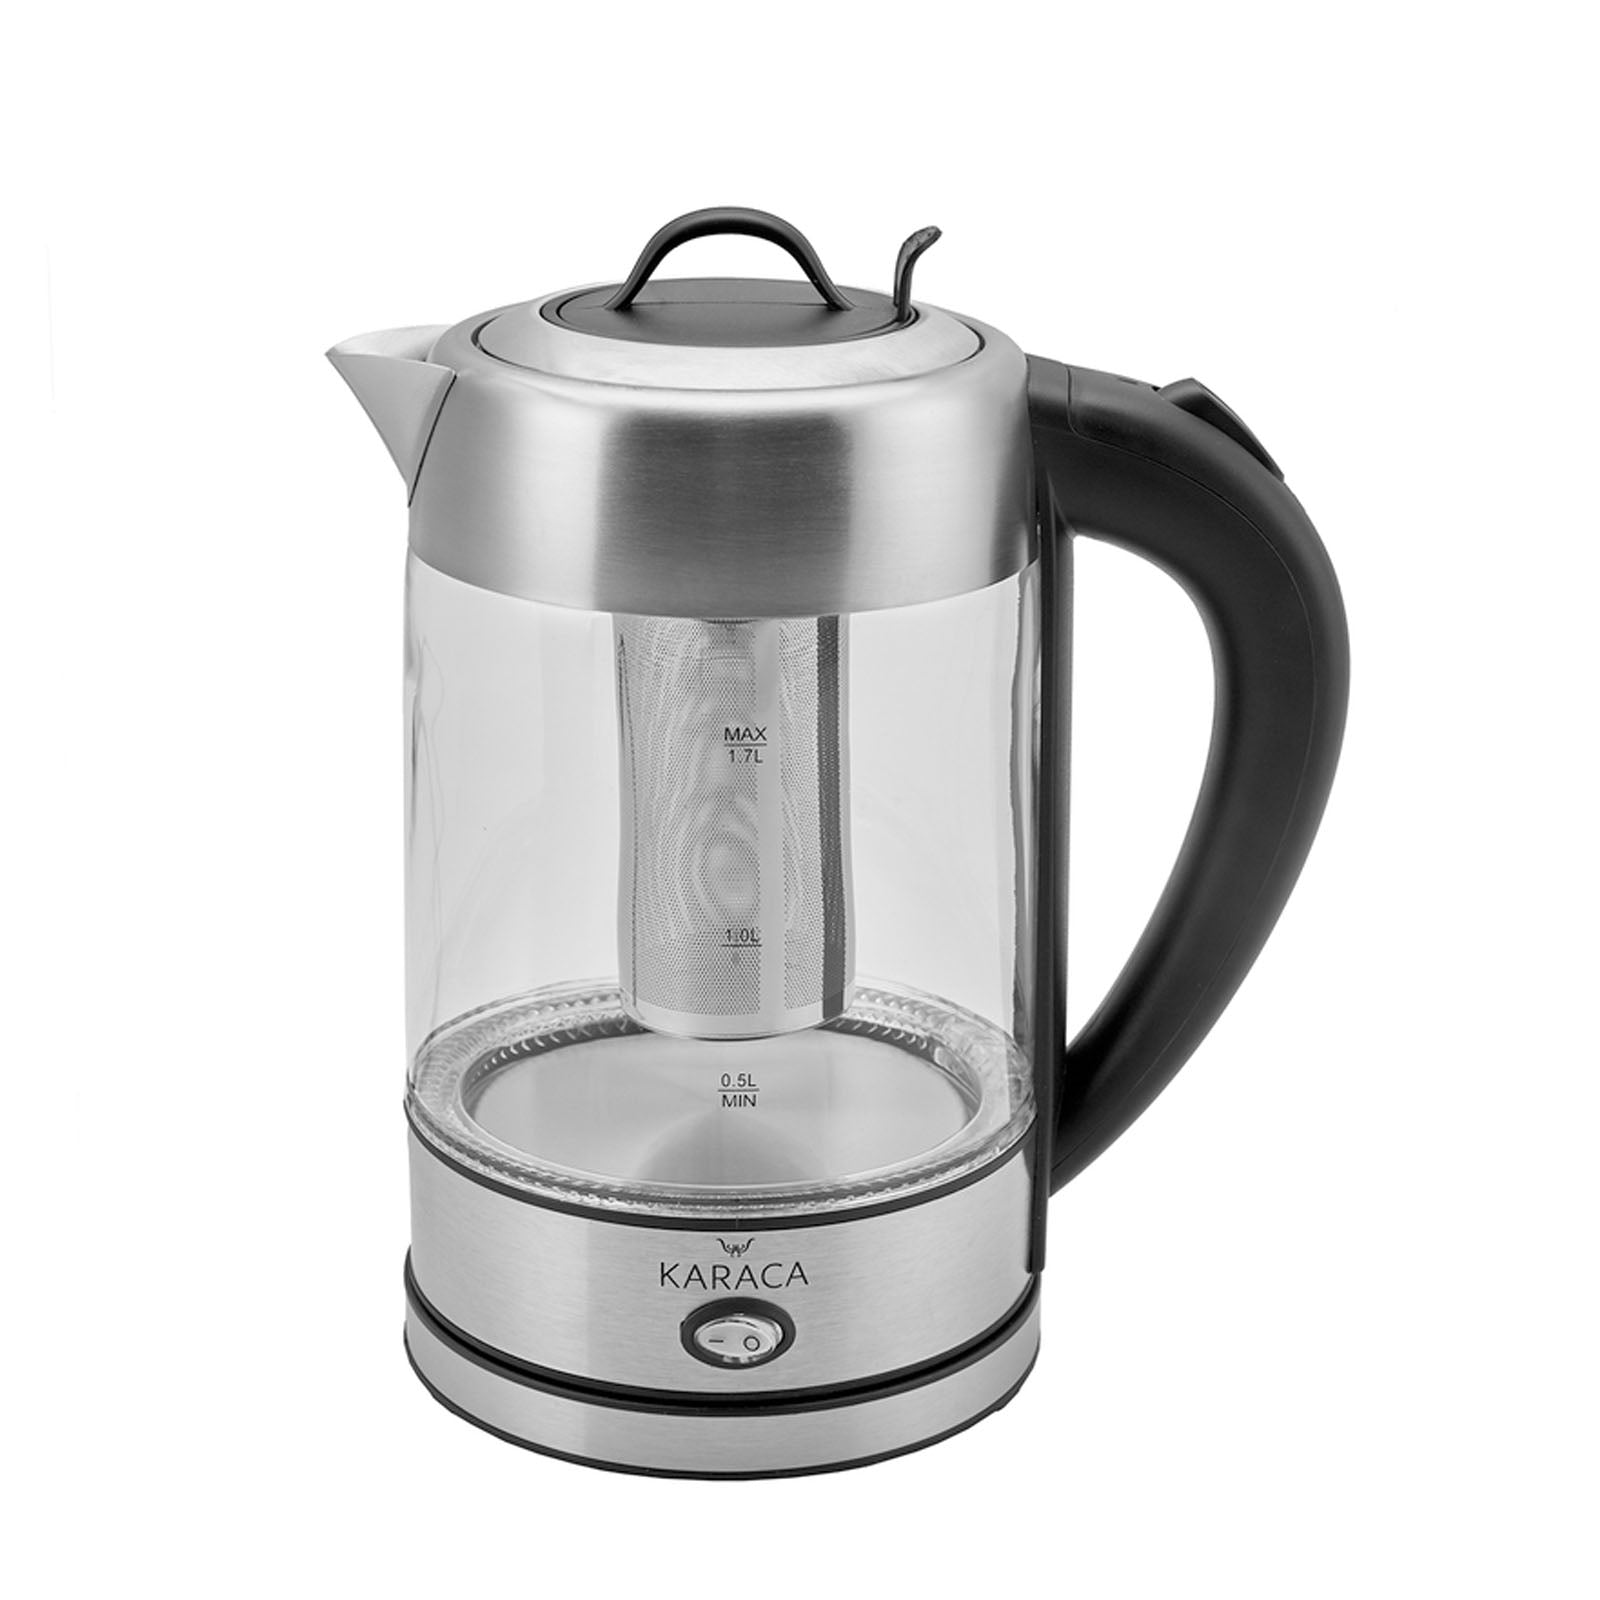 Karaca glass herbal tea maker with LED lighting Inox 2202 153.01.06.4887 - ebarza